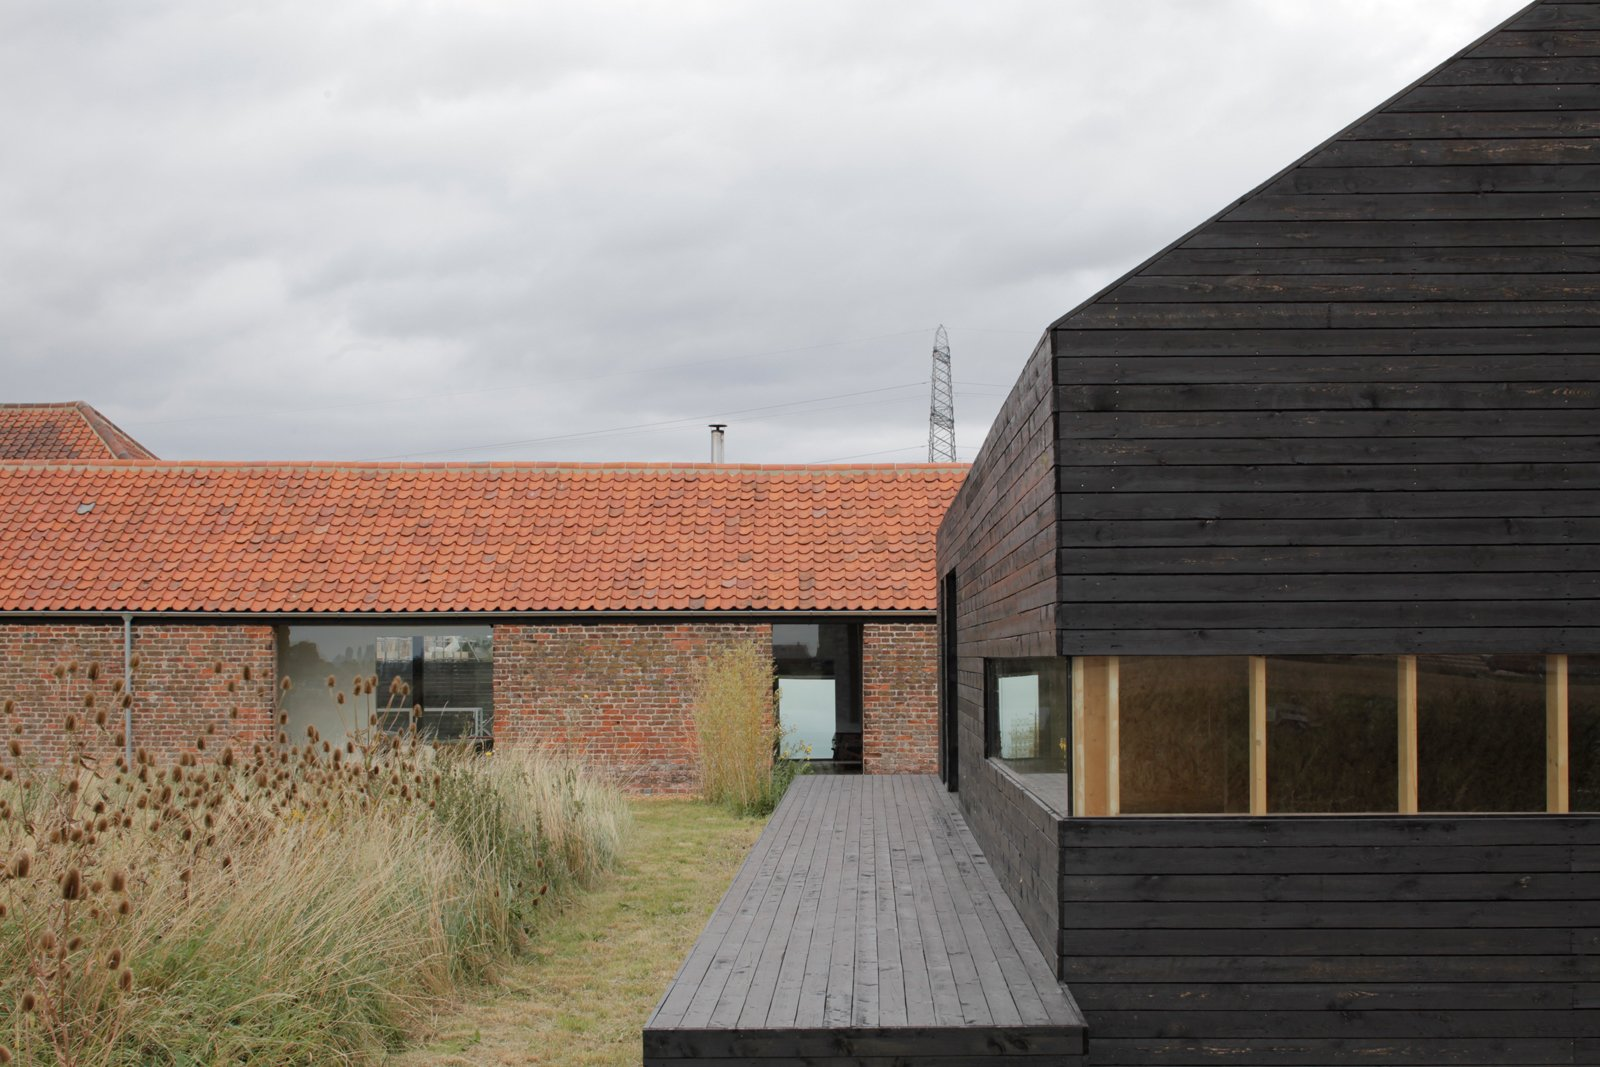 Exterior, Tile Roof Material, Brick Siding Material, Wood Siding Material, and House Building Type For a bit of elevation in the overwhelmingly horizontal compound, step onto the deck of the Stealth Barn. A strip of mowed grass delineates a path between the two structures; otherwise the grasses grow wild.  Photos from A Pair of English Barns Hide Unabashedly Bold and Budget-Friendly Minimalist Interiors